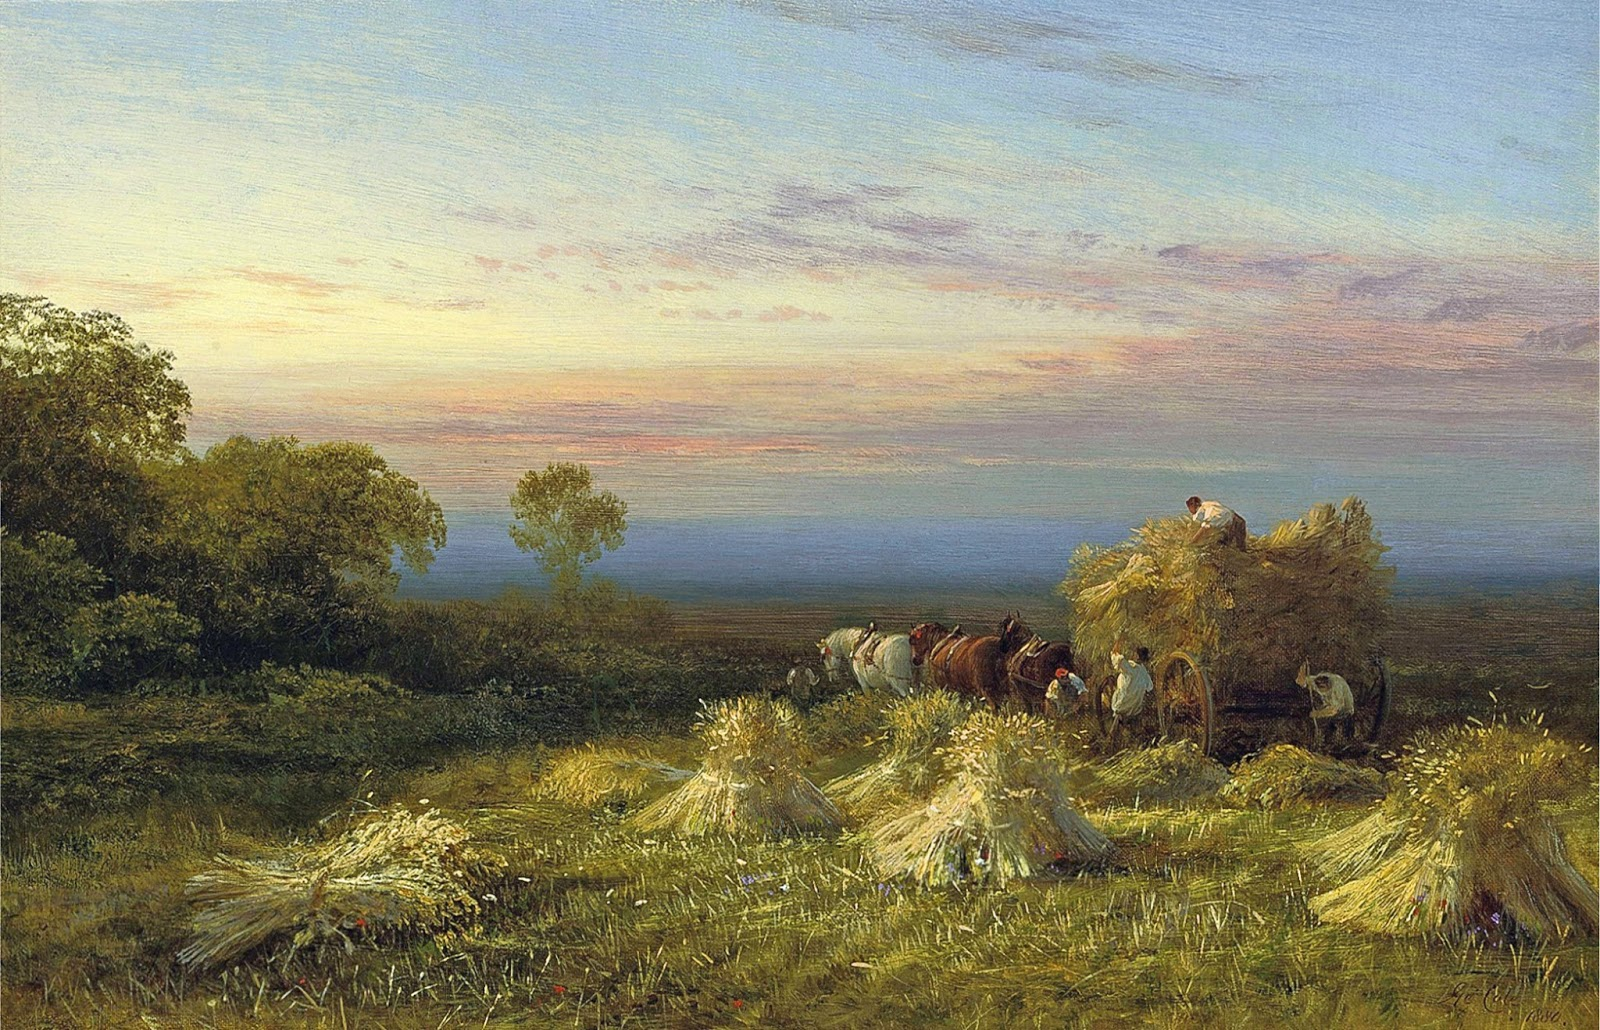 Cole At the End of the Day (1880) [this is a